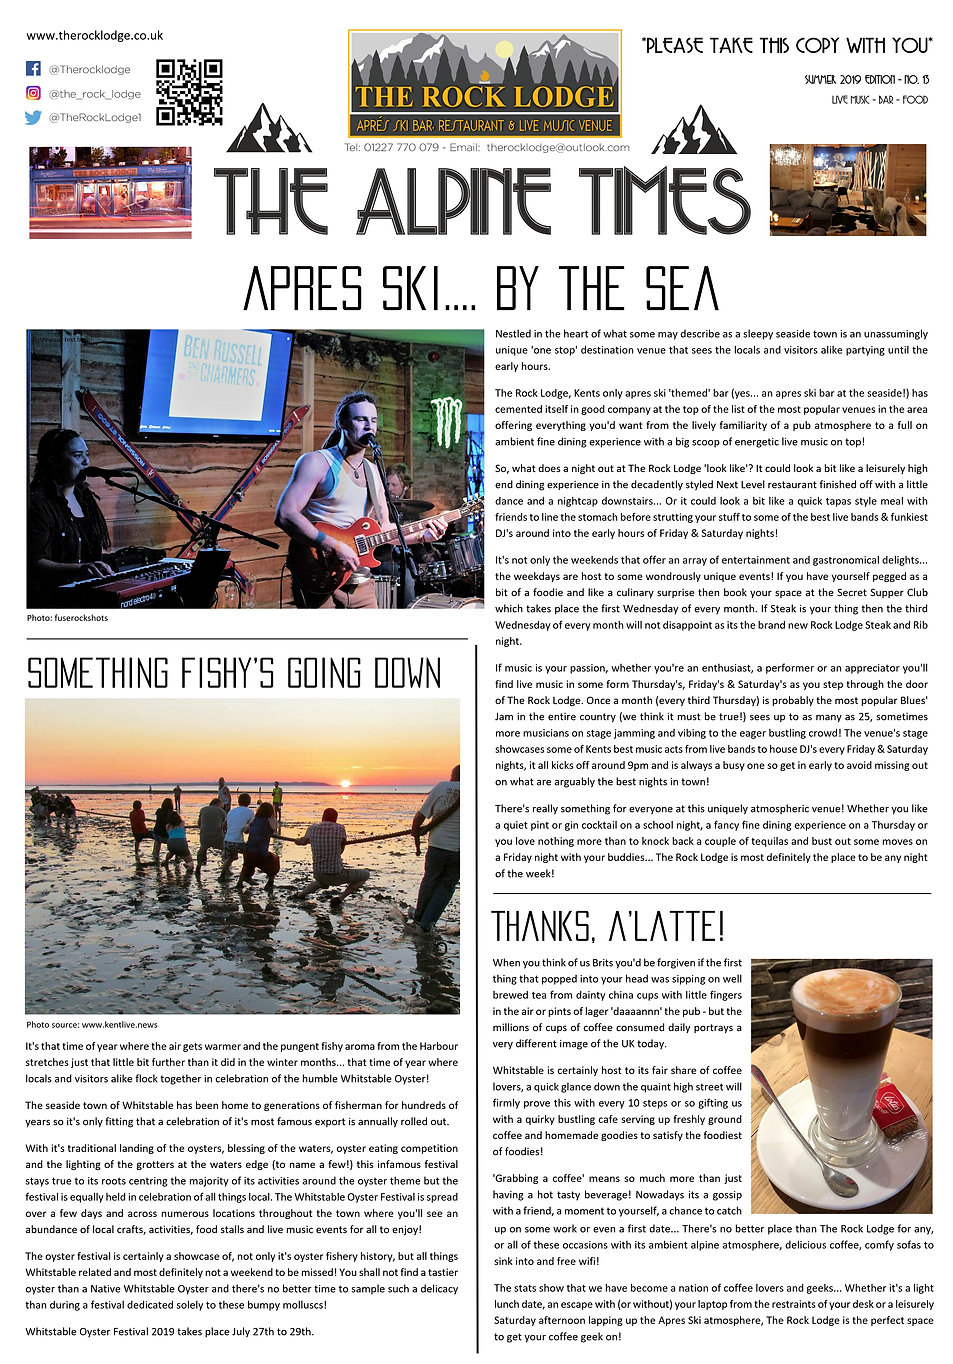 summer 19 ALPINE TIMES LAYOUT00.jpg